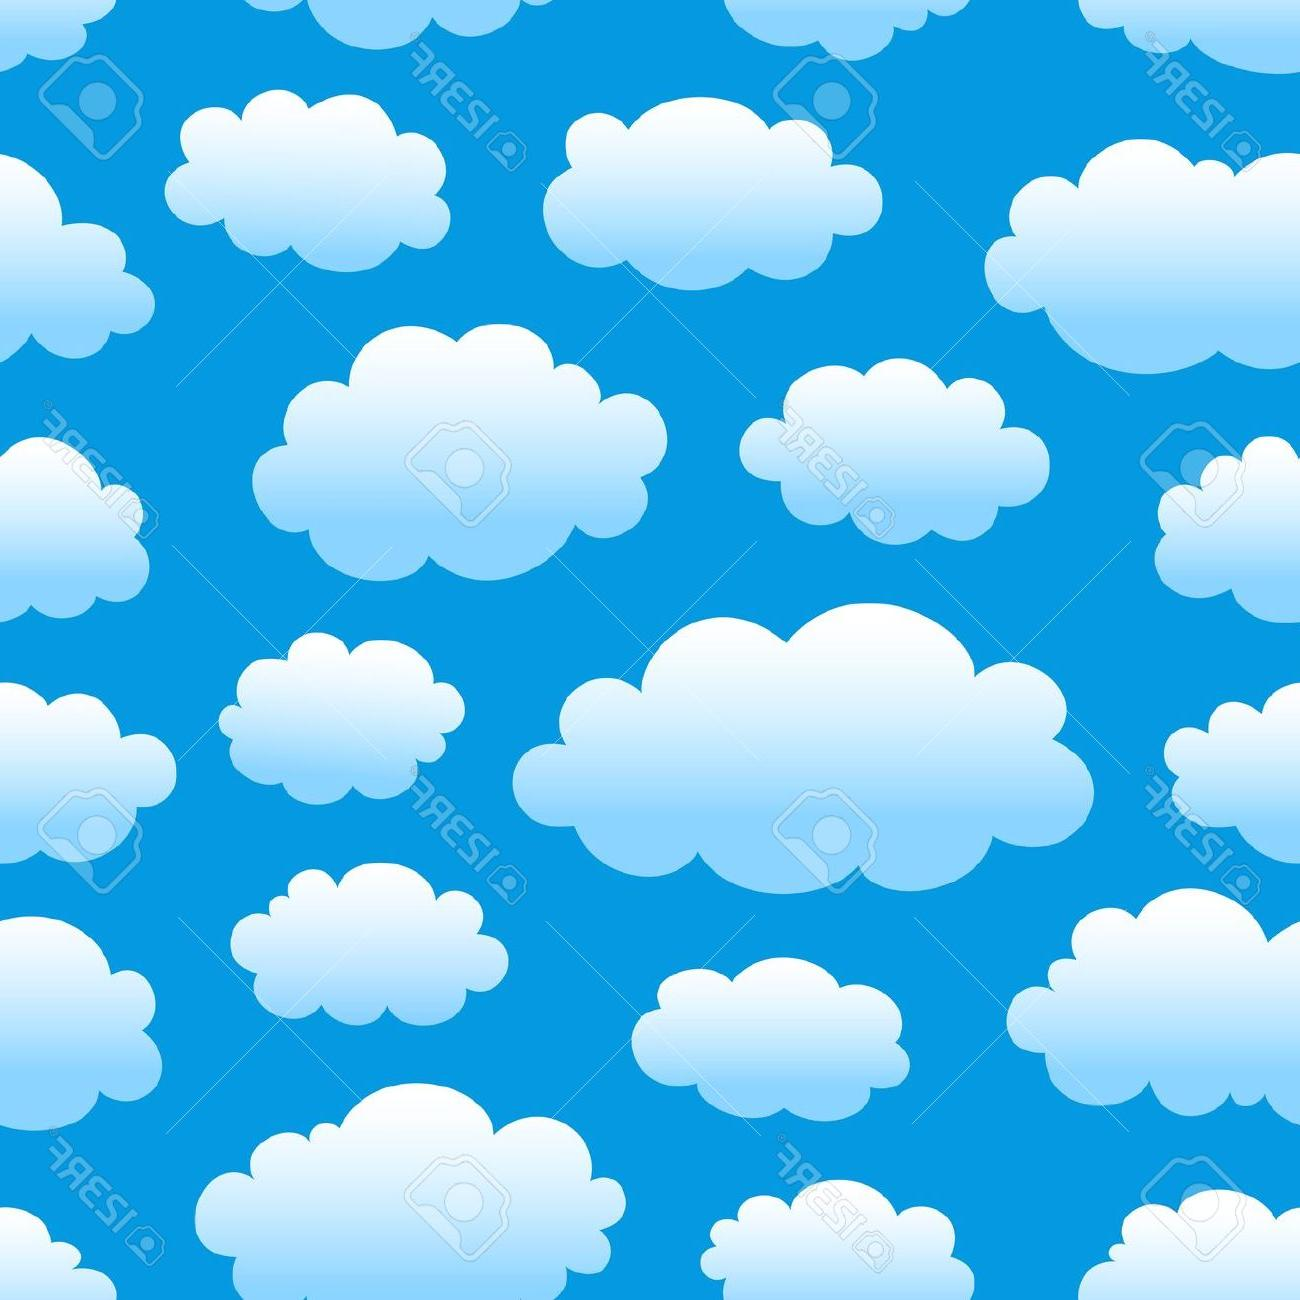 Clouds clipart file banner black and white library Top Blue Cloud Clip Art File Free » Free Vector Art, Images ... banner black and white library